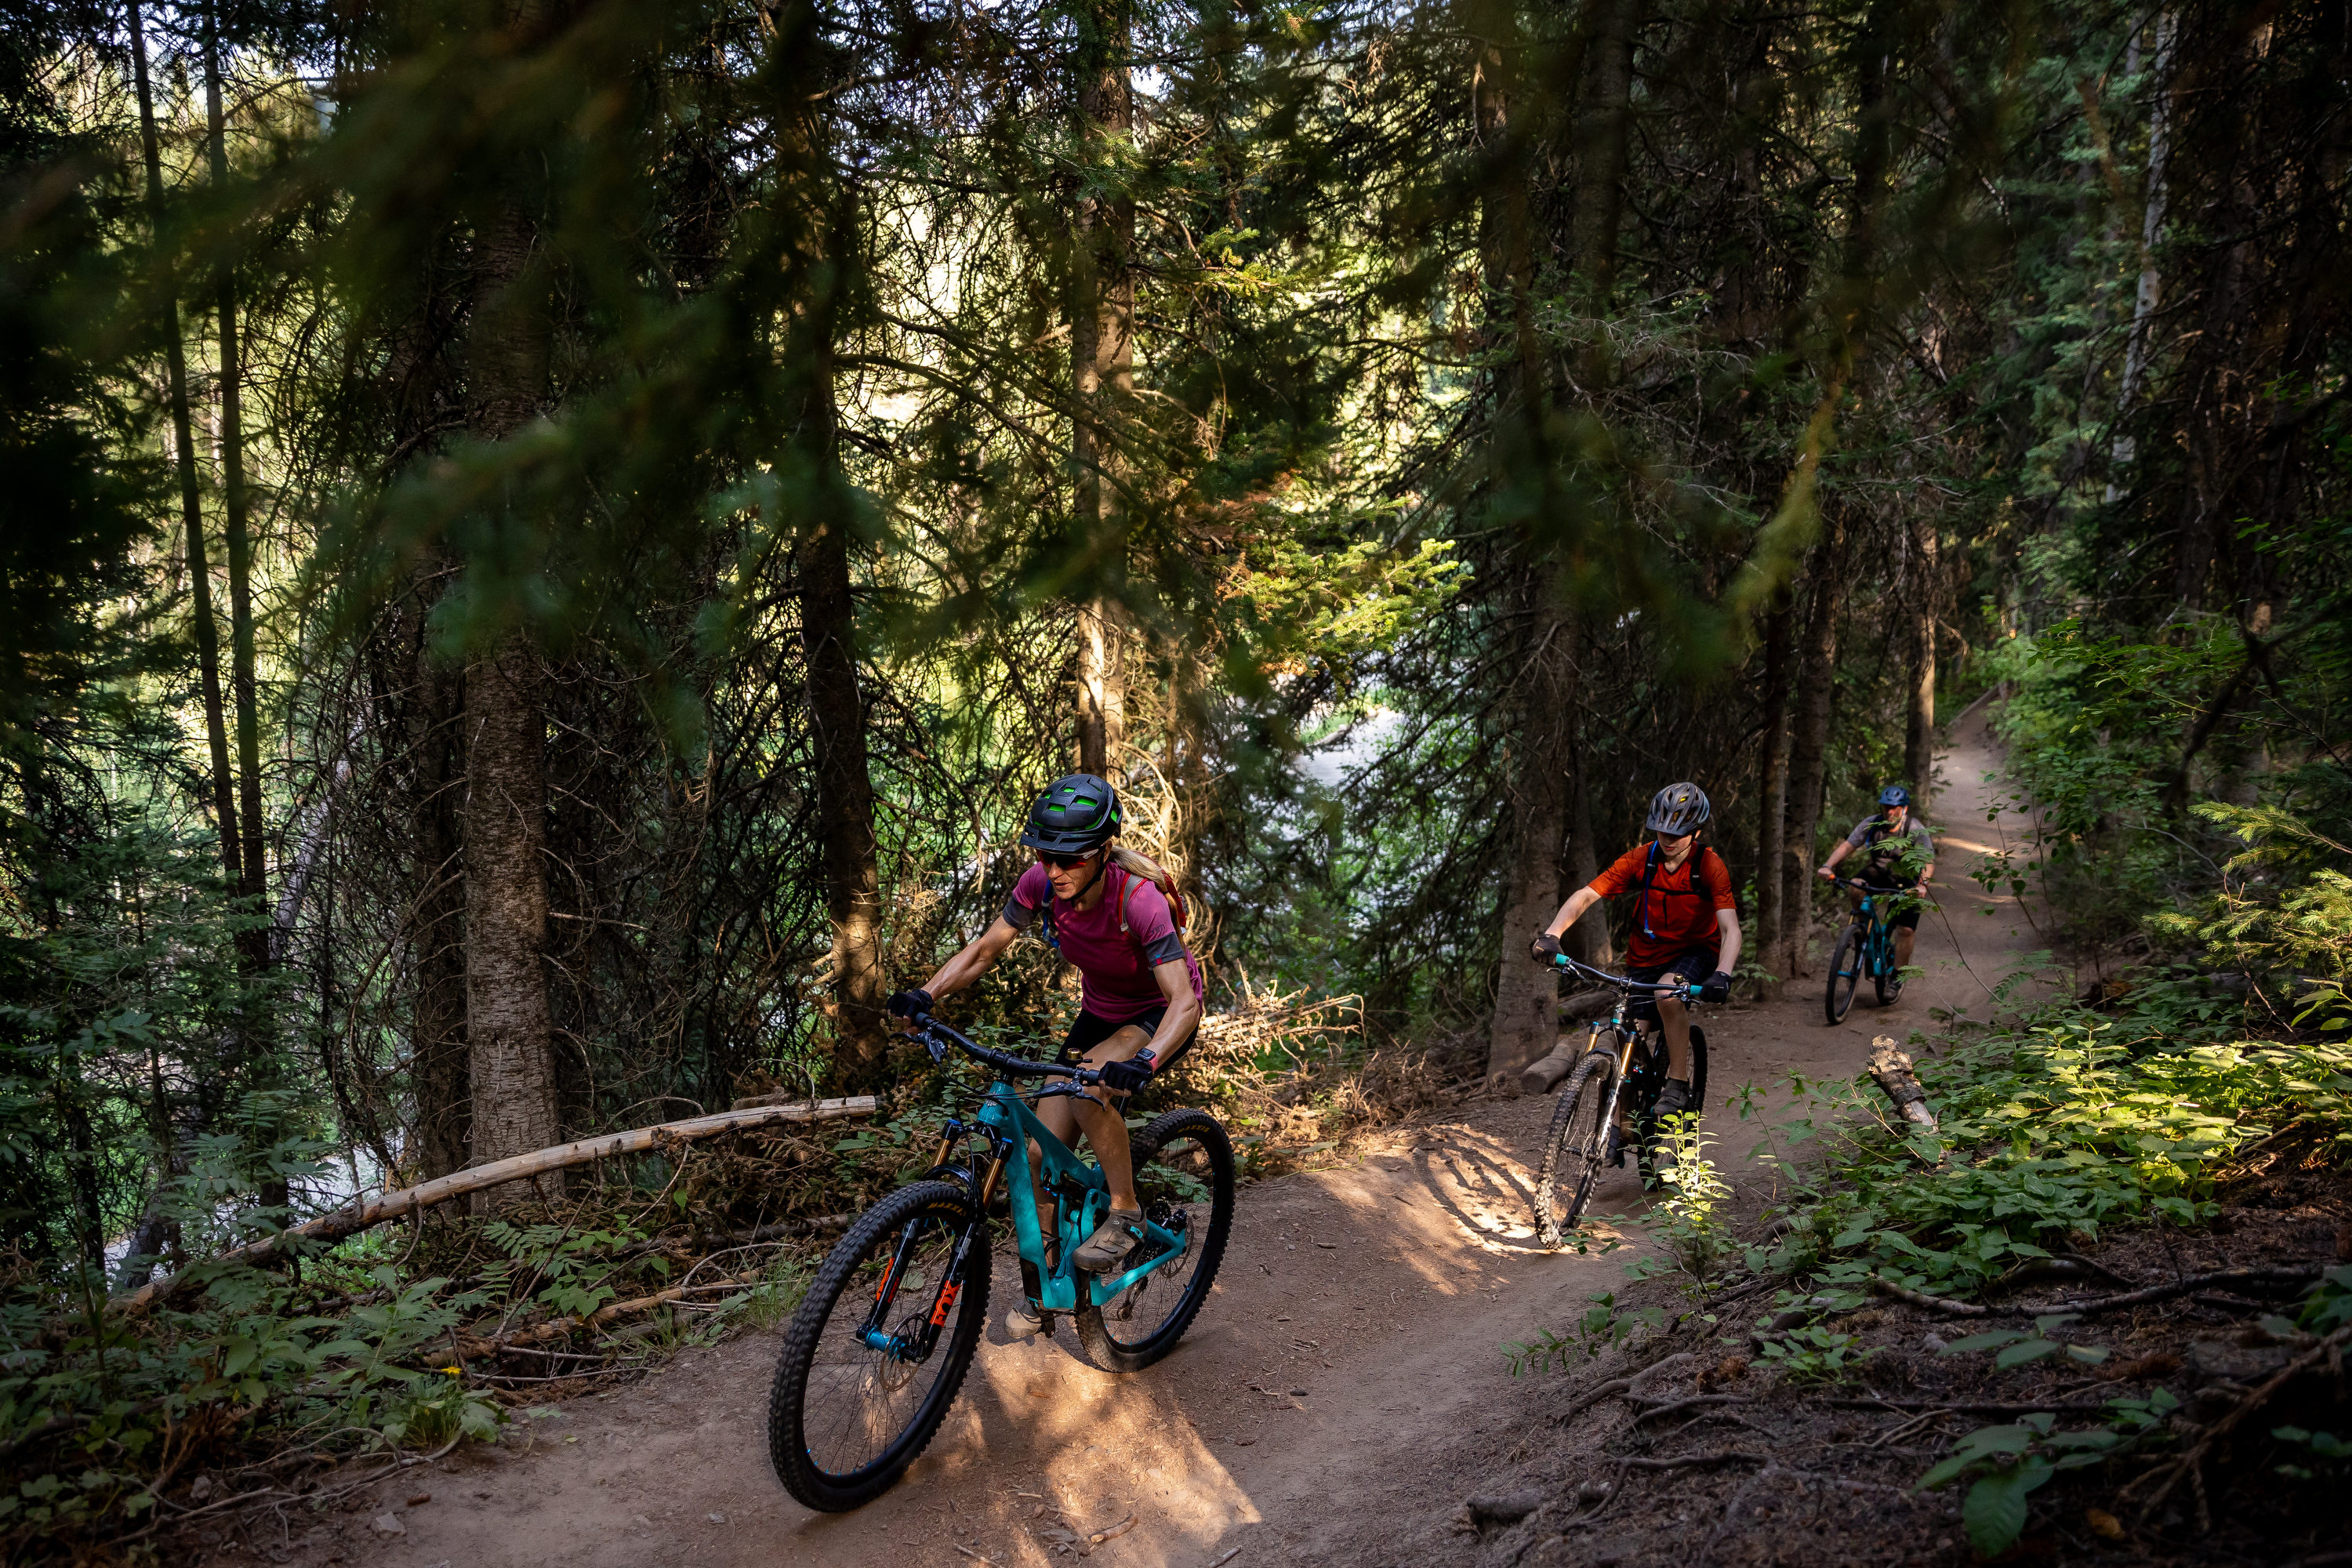 Heather King, left, and Michael King, right, and their son, Seth, 14, ride mountain bikes on the Big Water Trail in Millcreek Canyon on Monday, July 12, 2021.